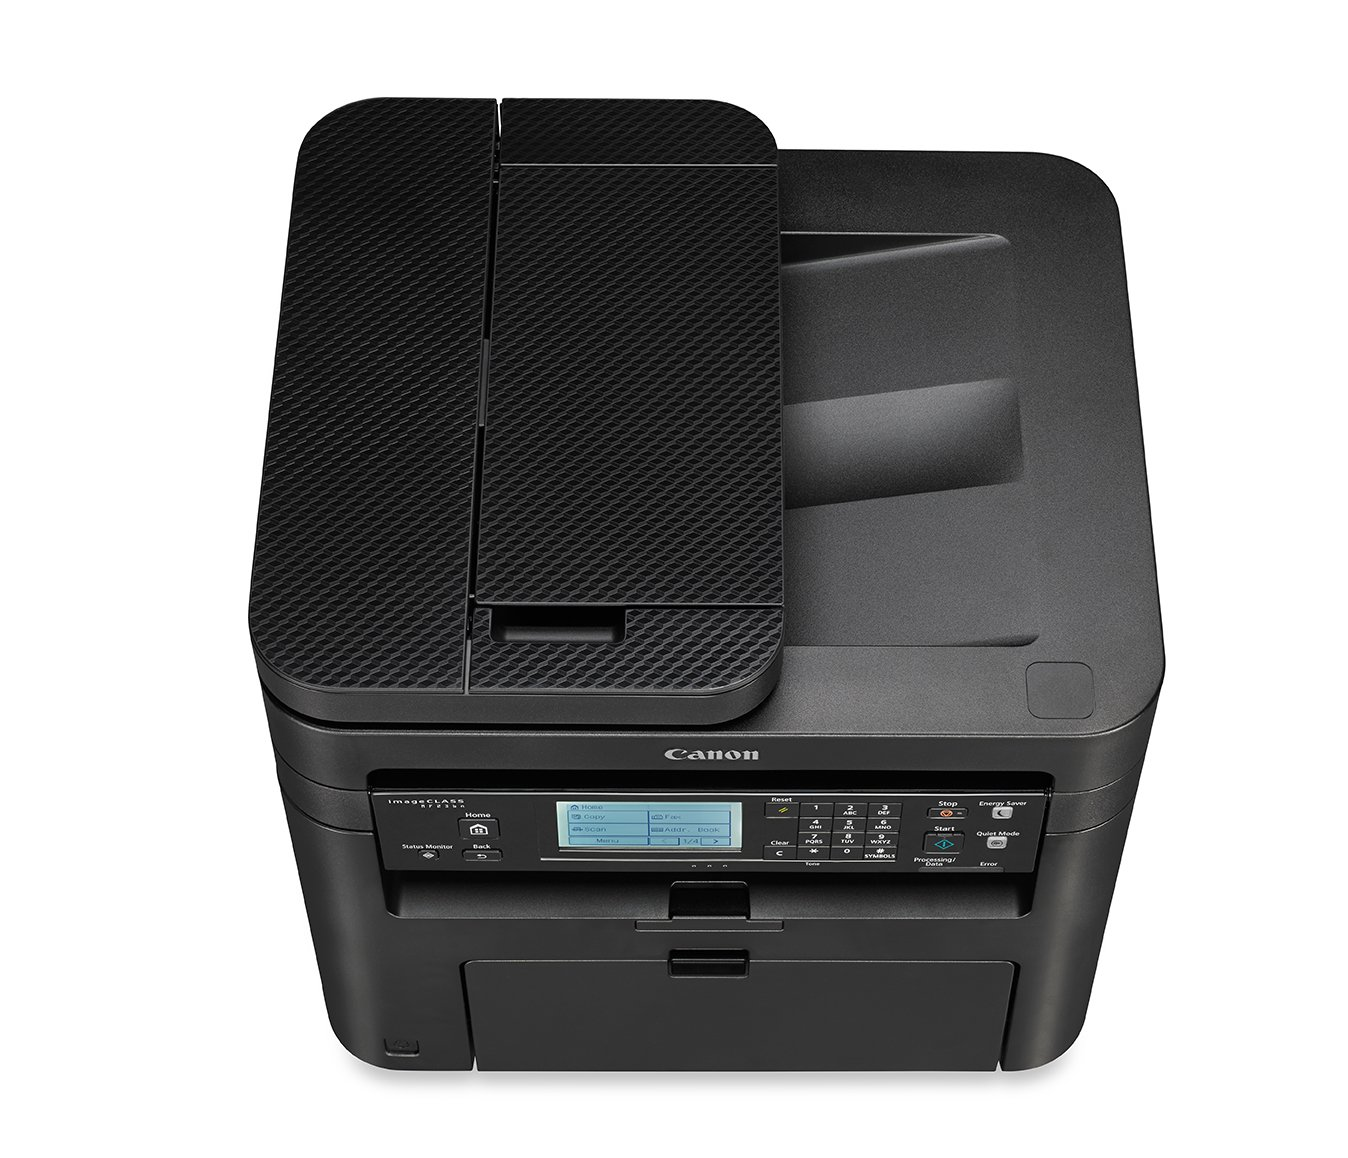 Canon imageCLASS MF236n All in One, Mobile Ready Printer, Black by Canon